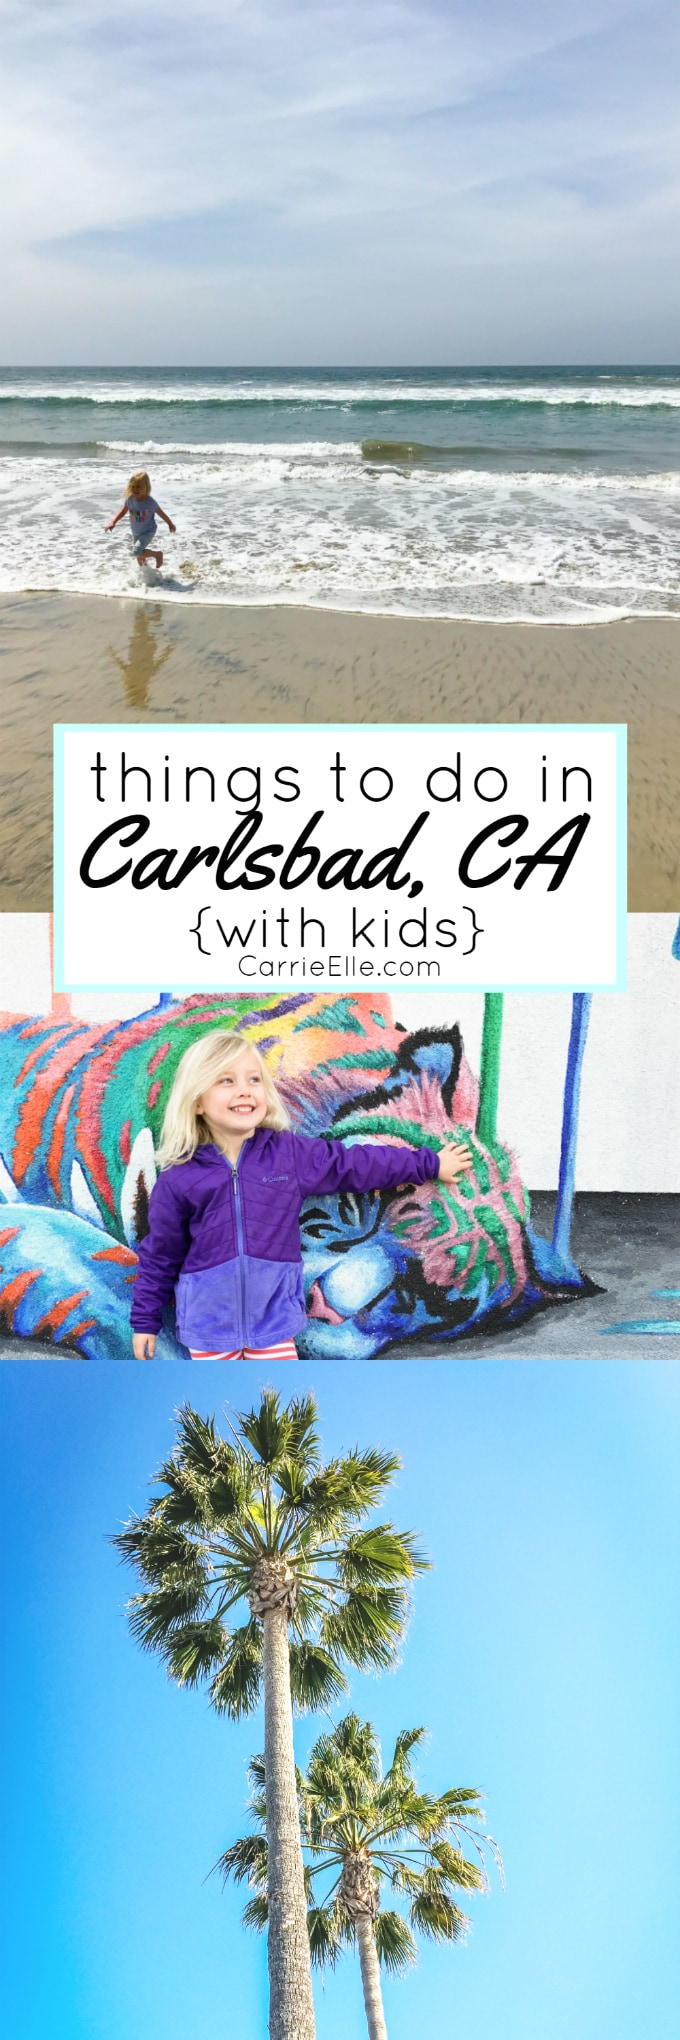 Things to do in Carlsbad, CA with Kids